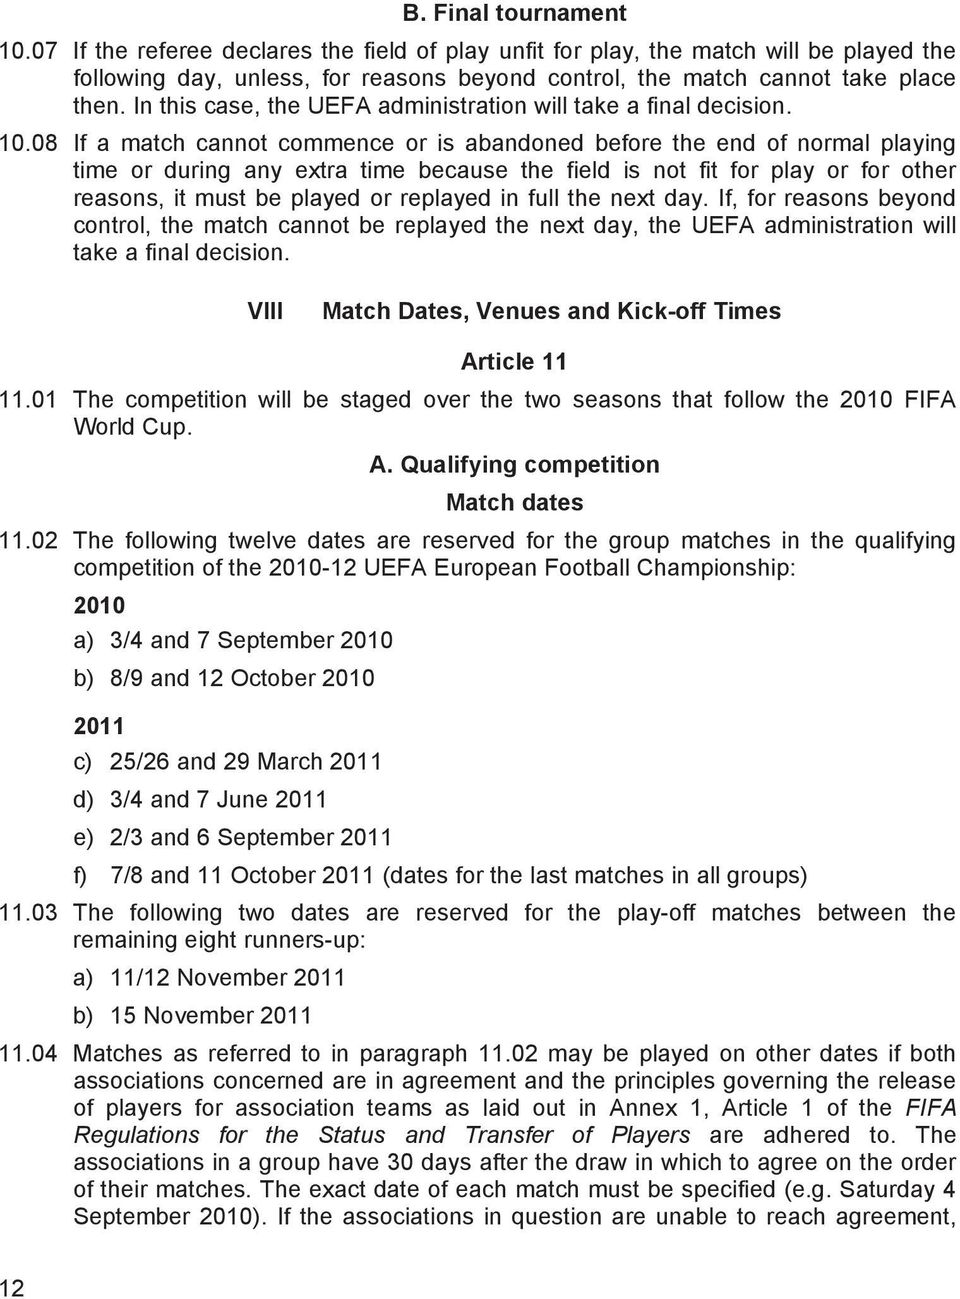 08 If a match cannot commence or is abandoned before the end of normal playing time or during any extra time because the field is not fit for play or for other reasons, it must be played or replayed